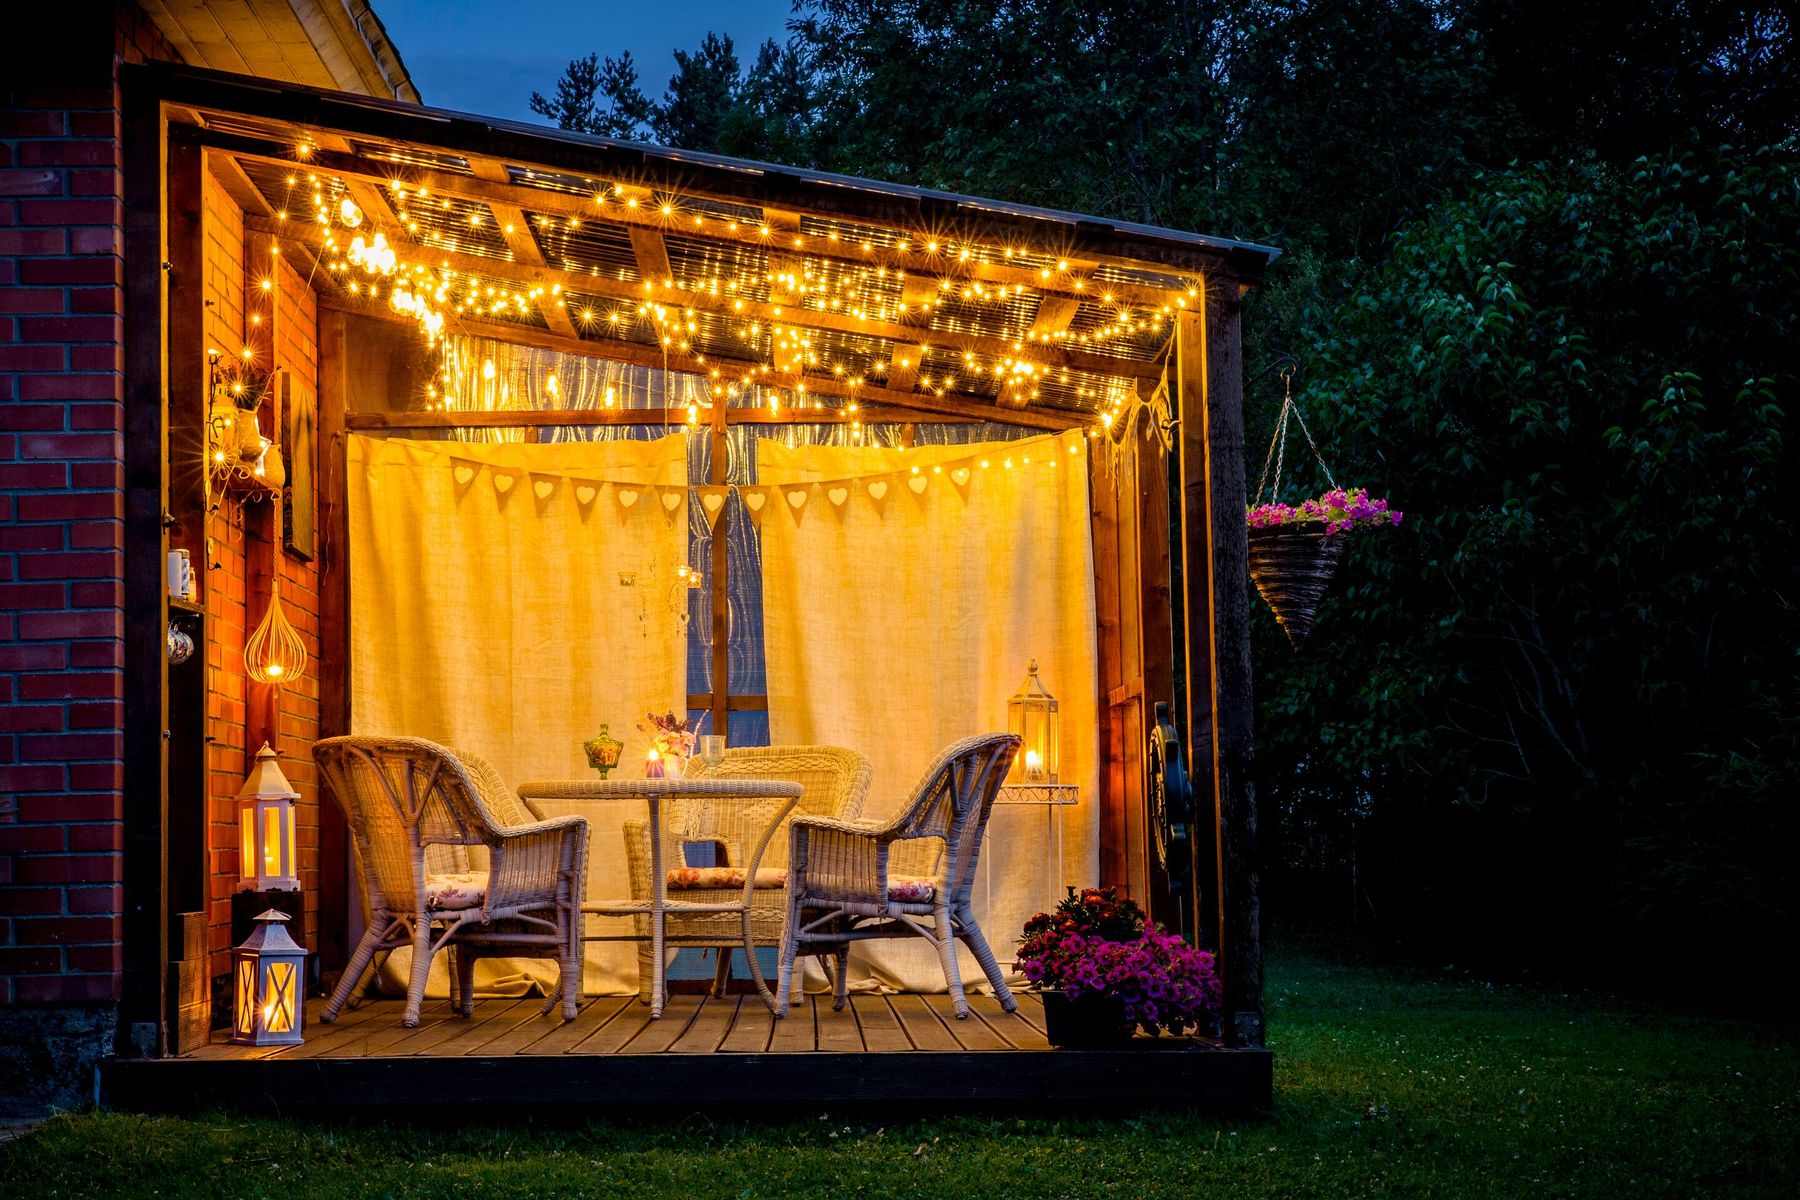 How to Get Your Back Yard Ready for Your Christmas Party